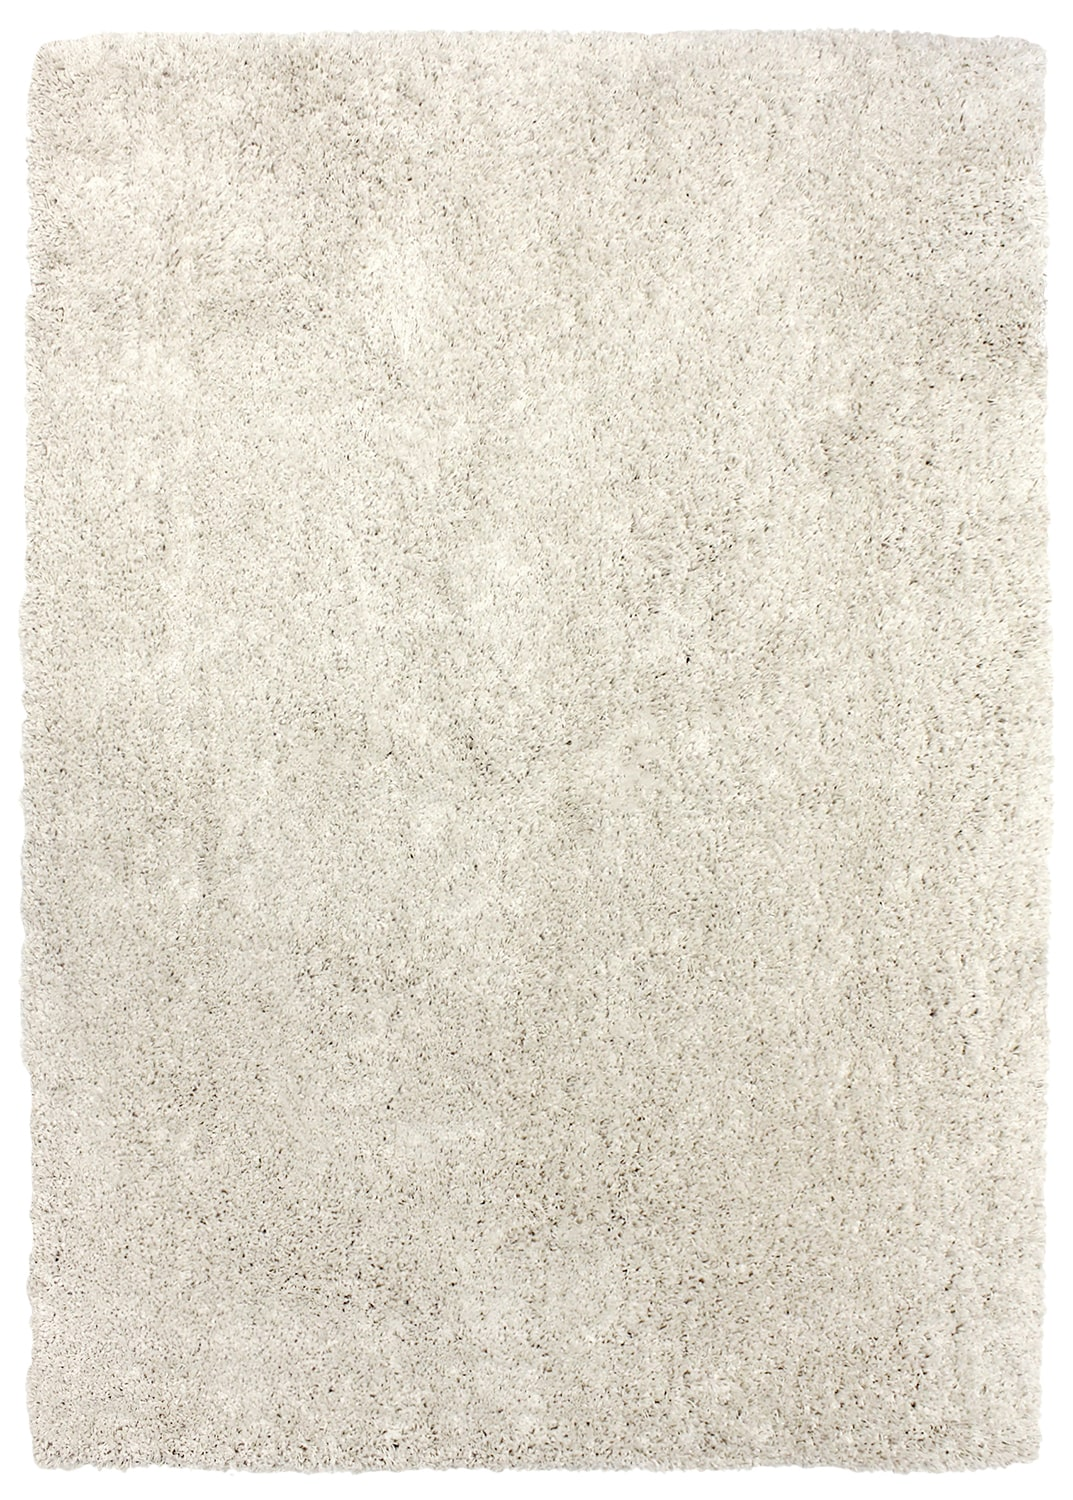 Loft Off-White Shag Area Rug – 8' x 10'